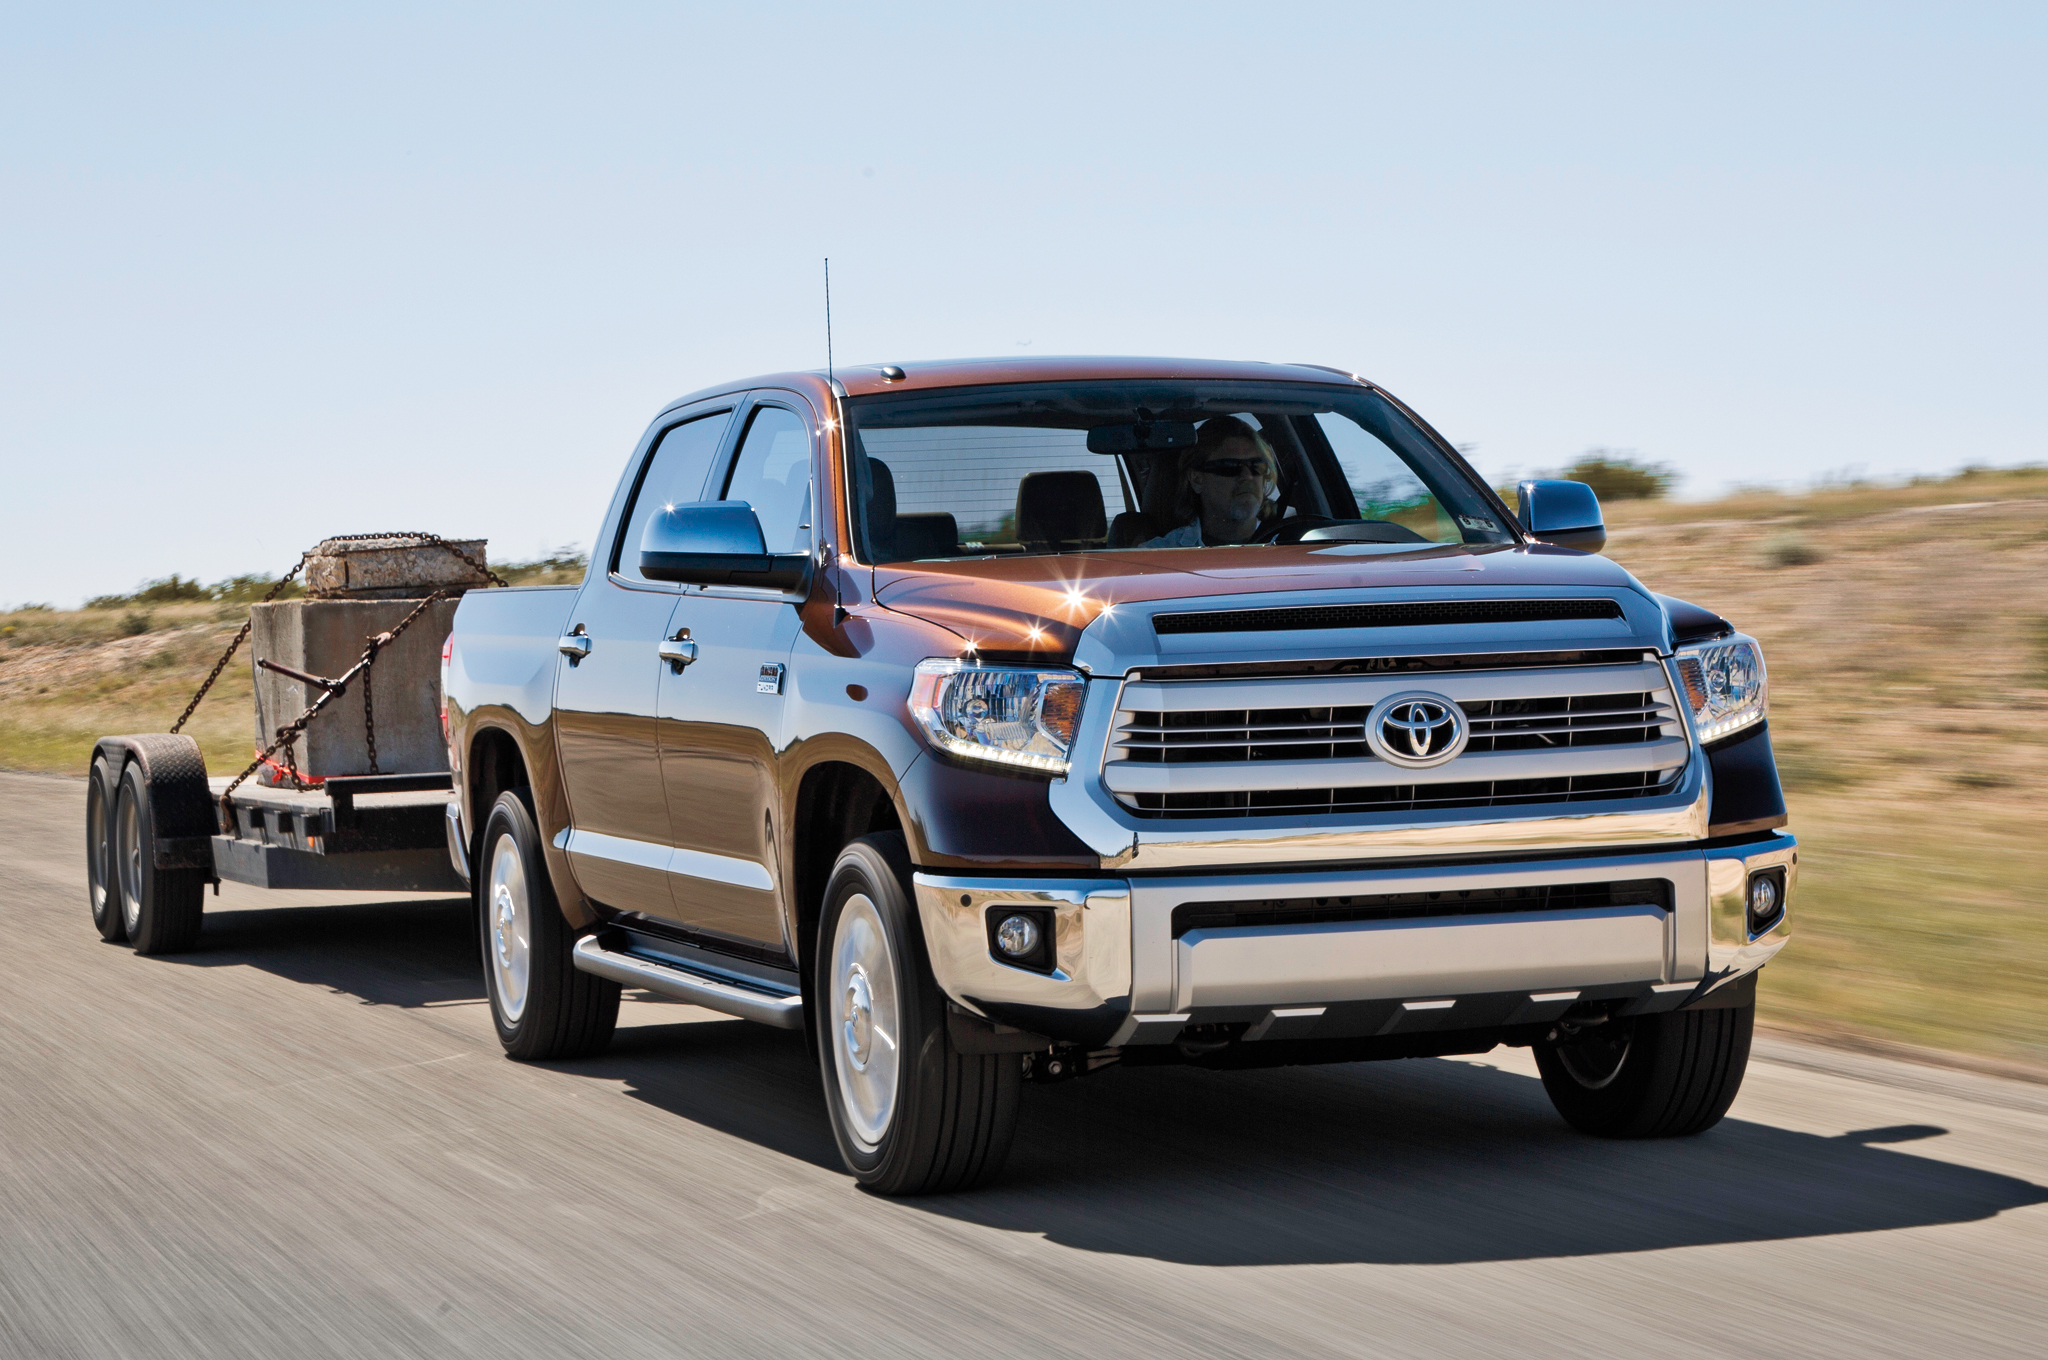 Beautiful 2014 Toyota Tundra 1794 Edition CrewMax 4x4 First Test